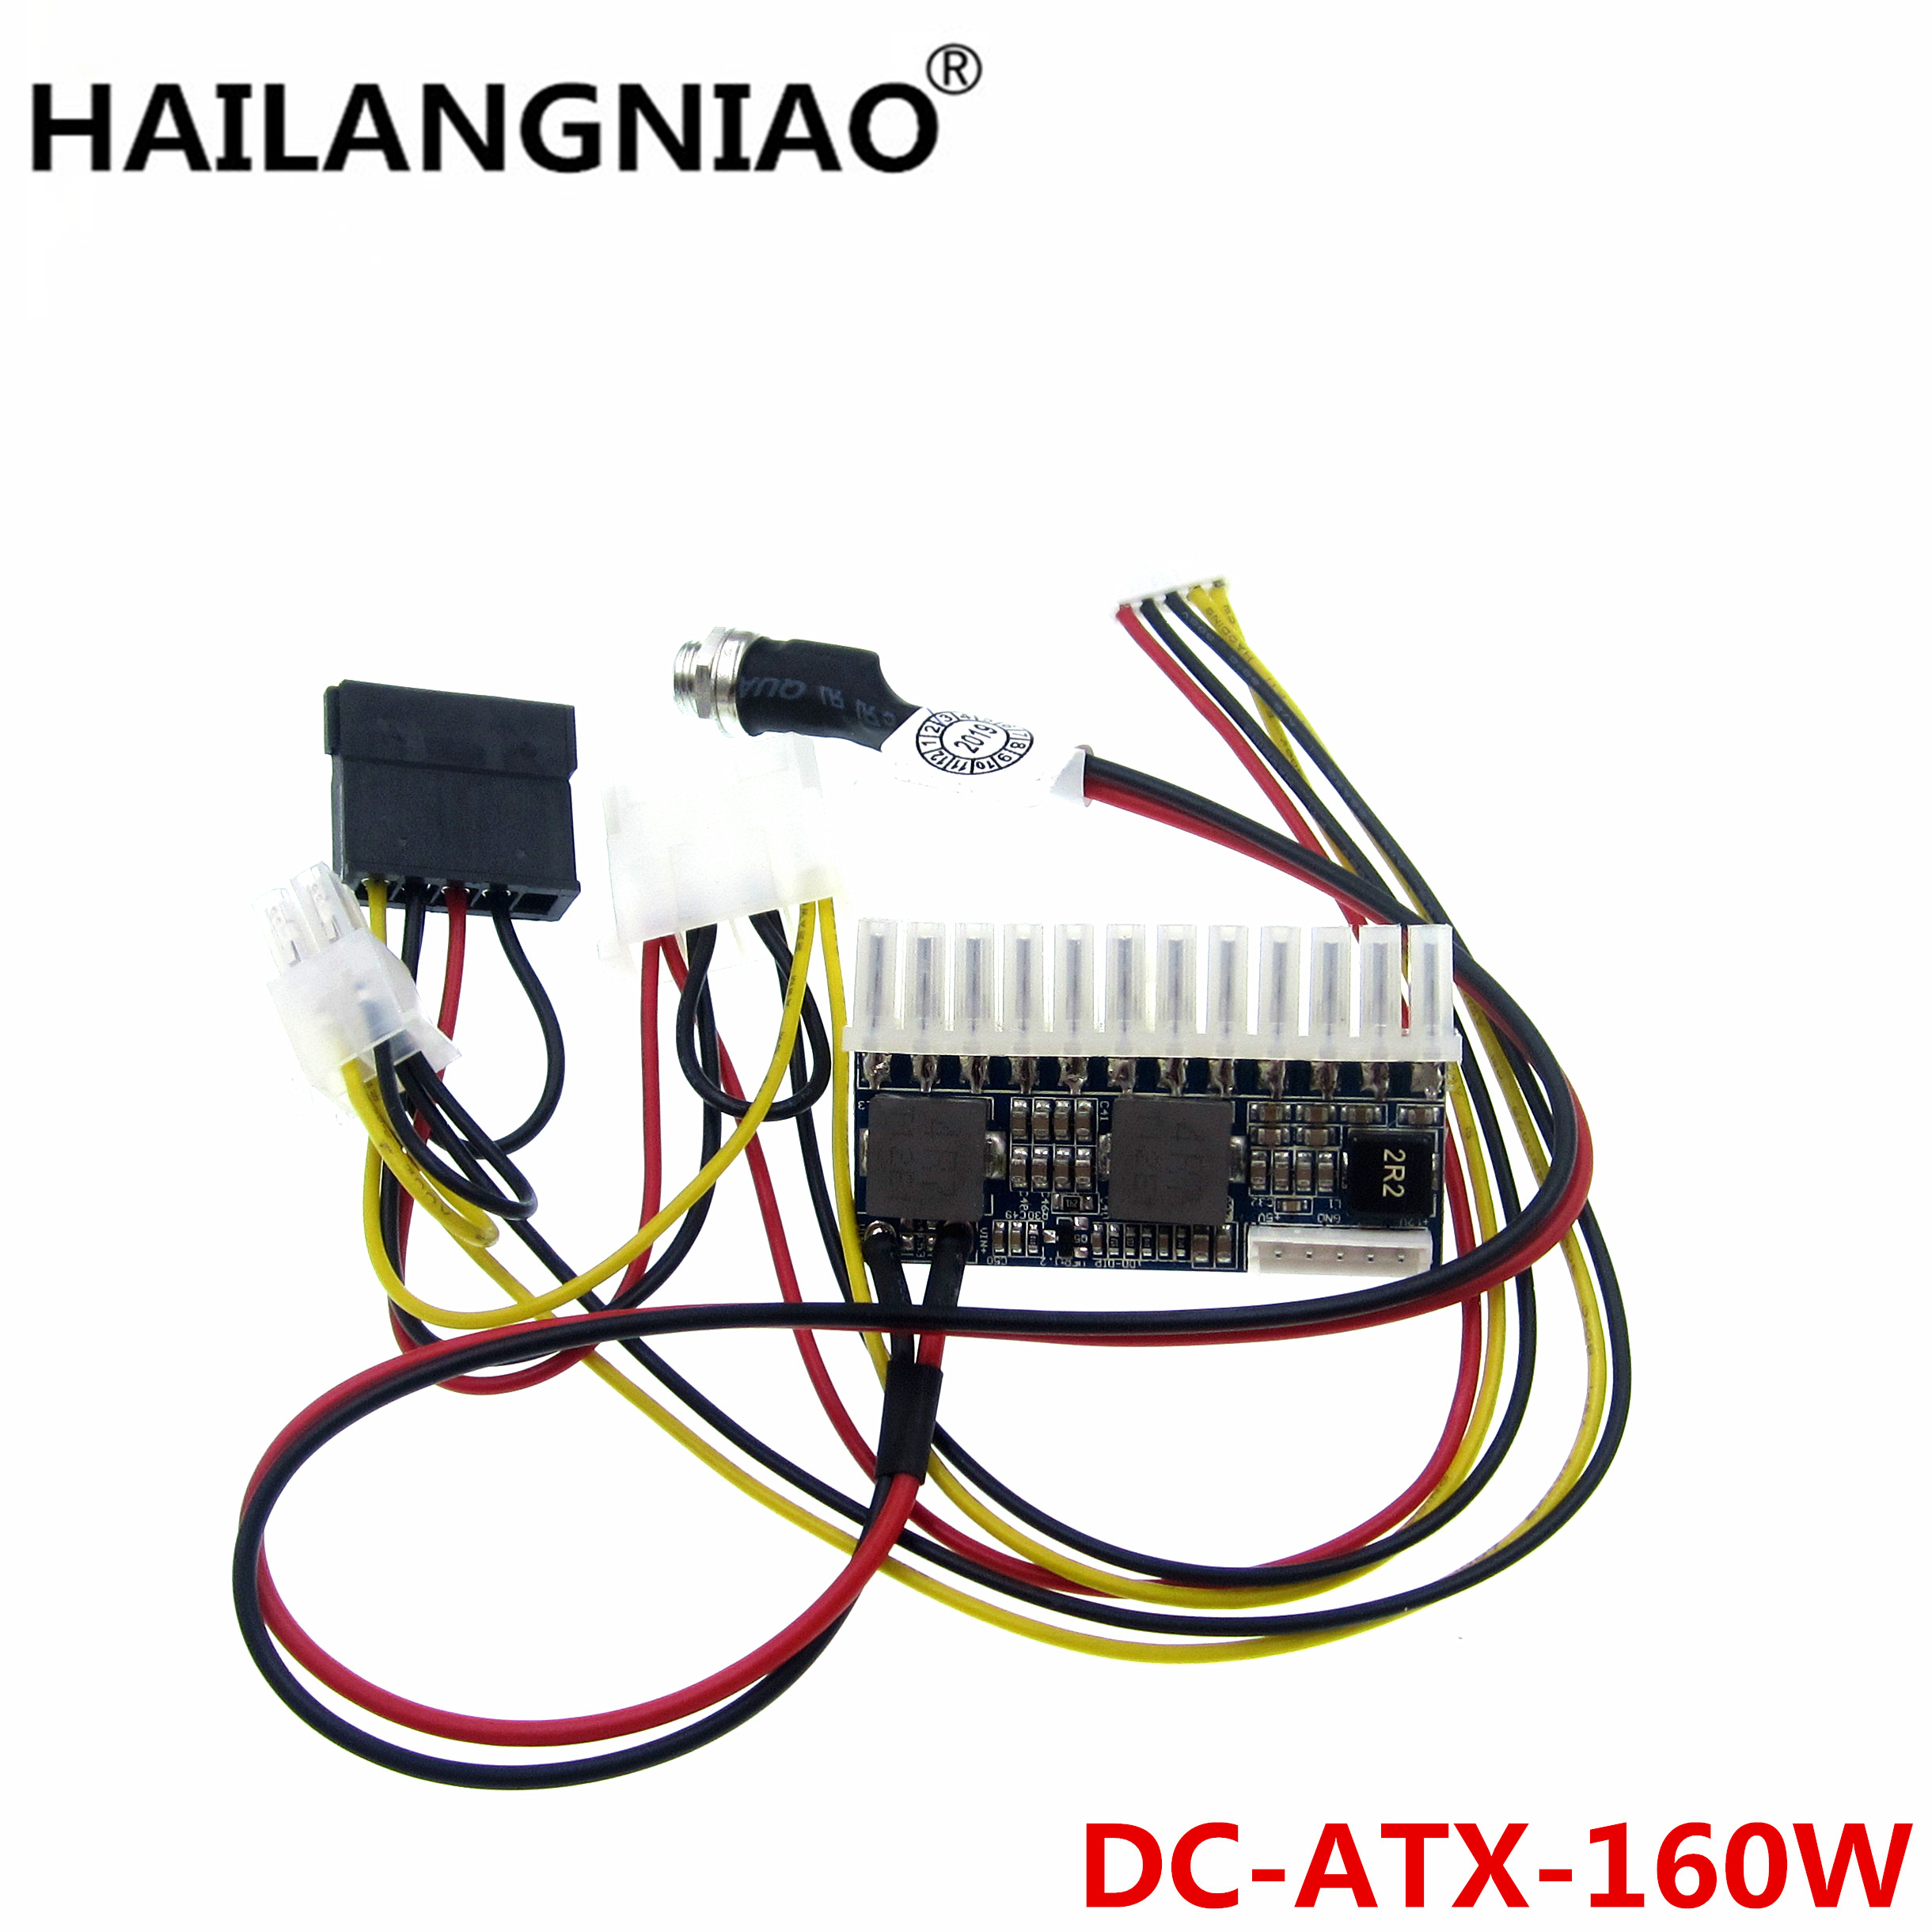 1set DC-ATX-160W 160W High Power DC 12V 24Pin ATX Switch Quality